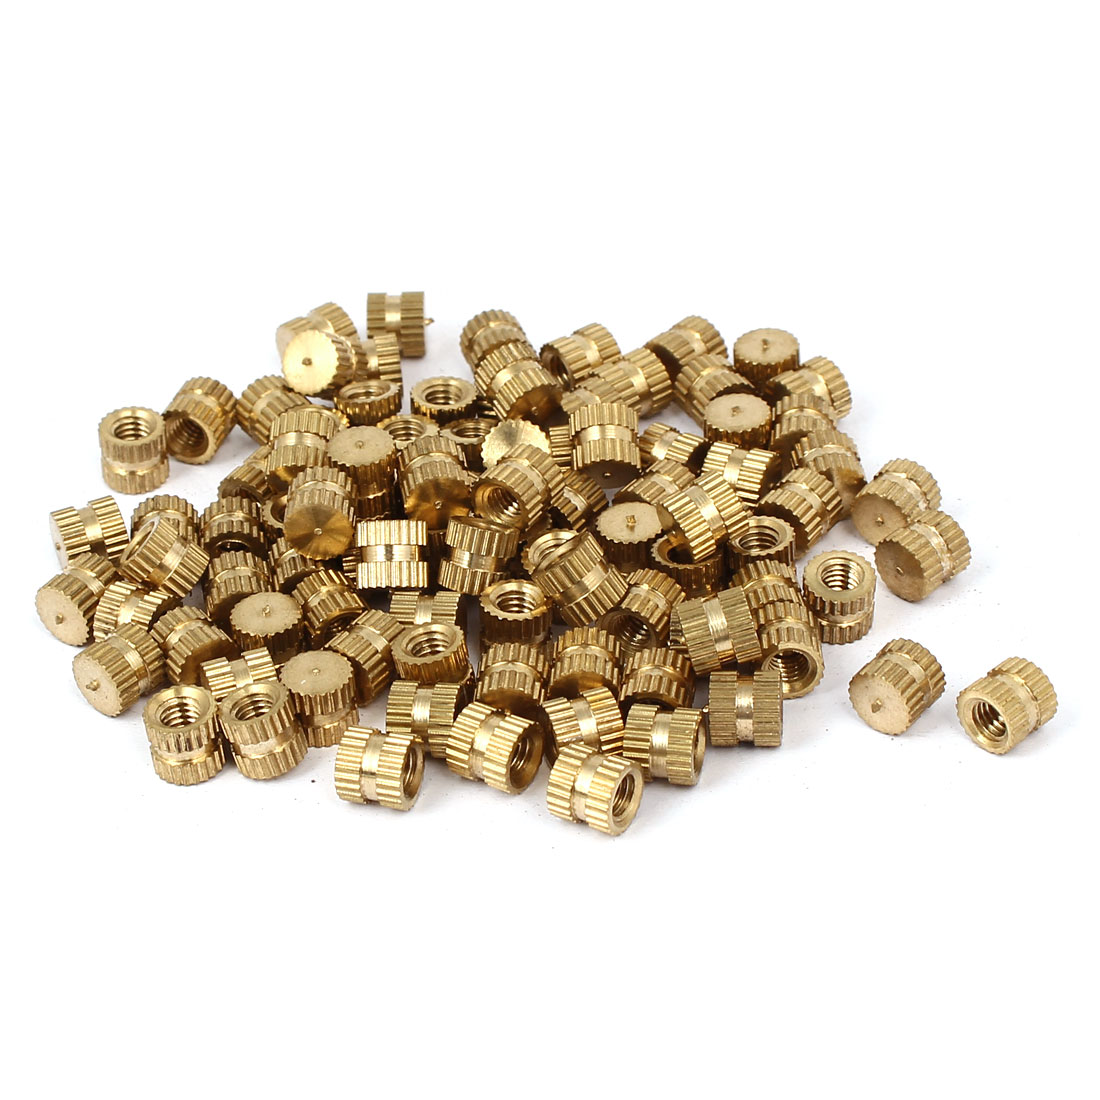 M4 x 6mm 6.3mm OD Brass Threaded Insert Embedded Knurled Thumb Nut 100PCS